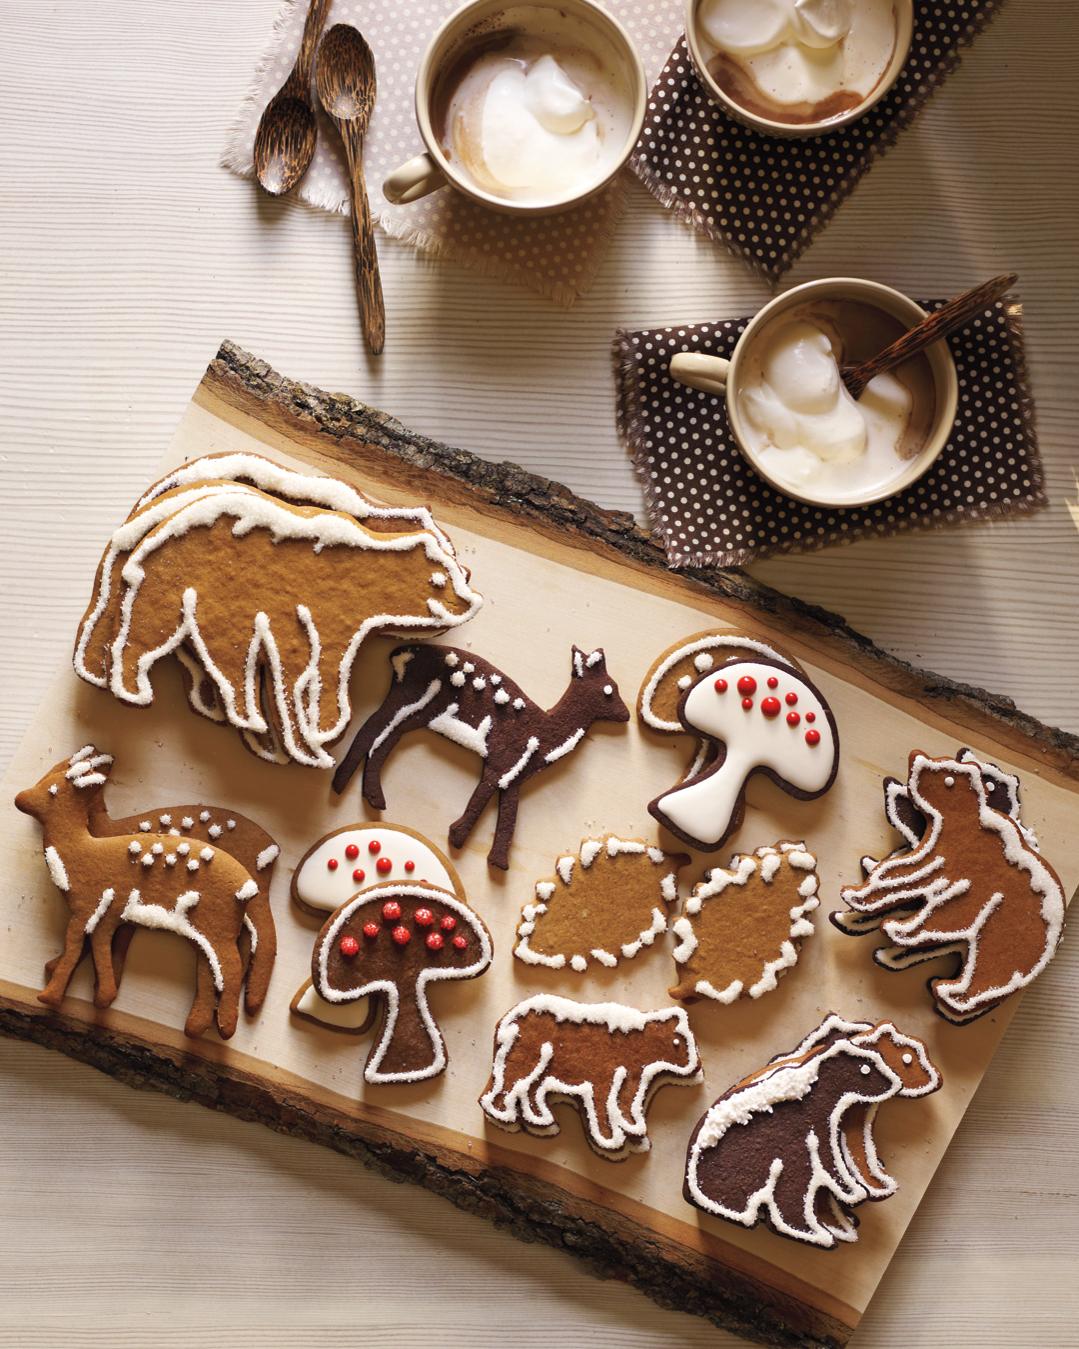 gingerbread-cookies-473-mld108759.jpg